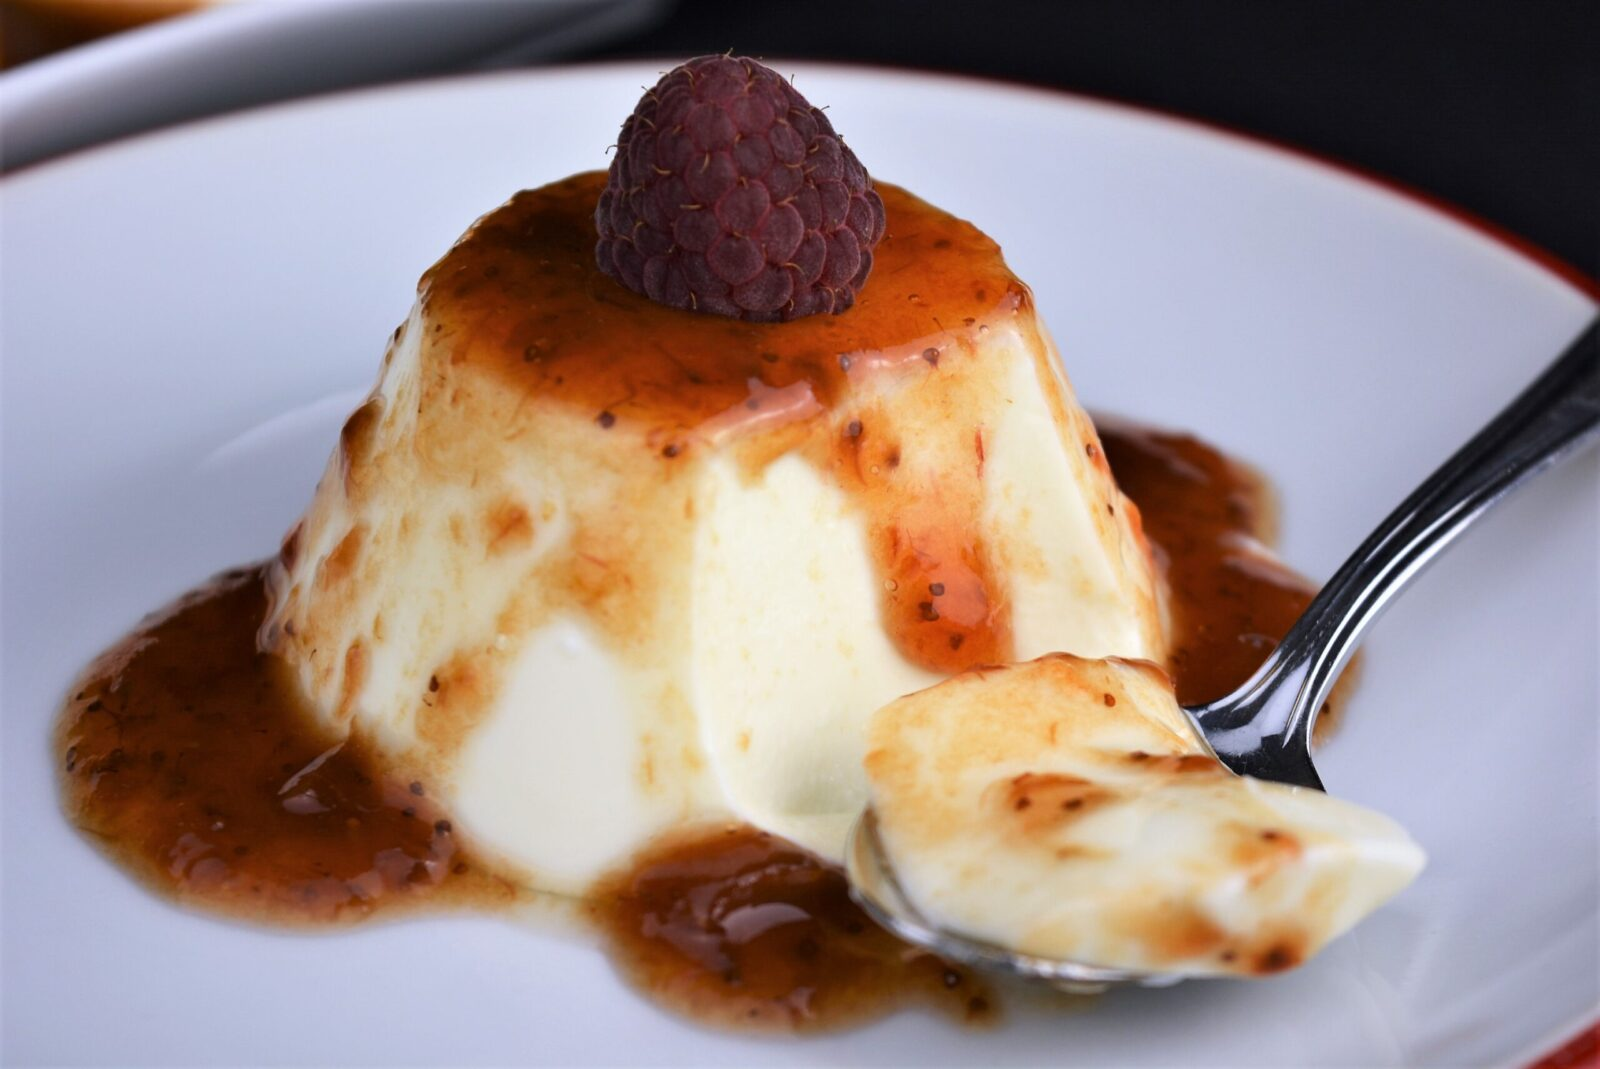 Panacota with cheese and red fruits